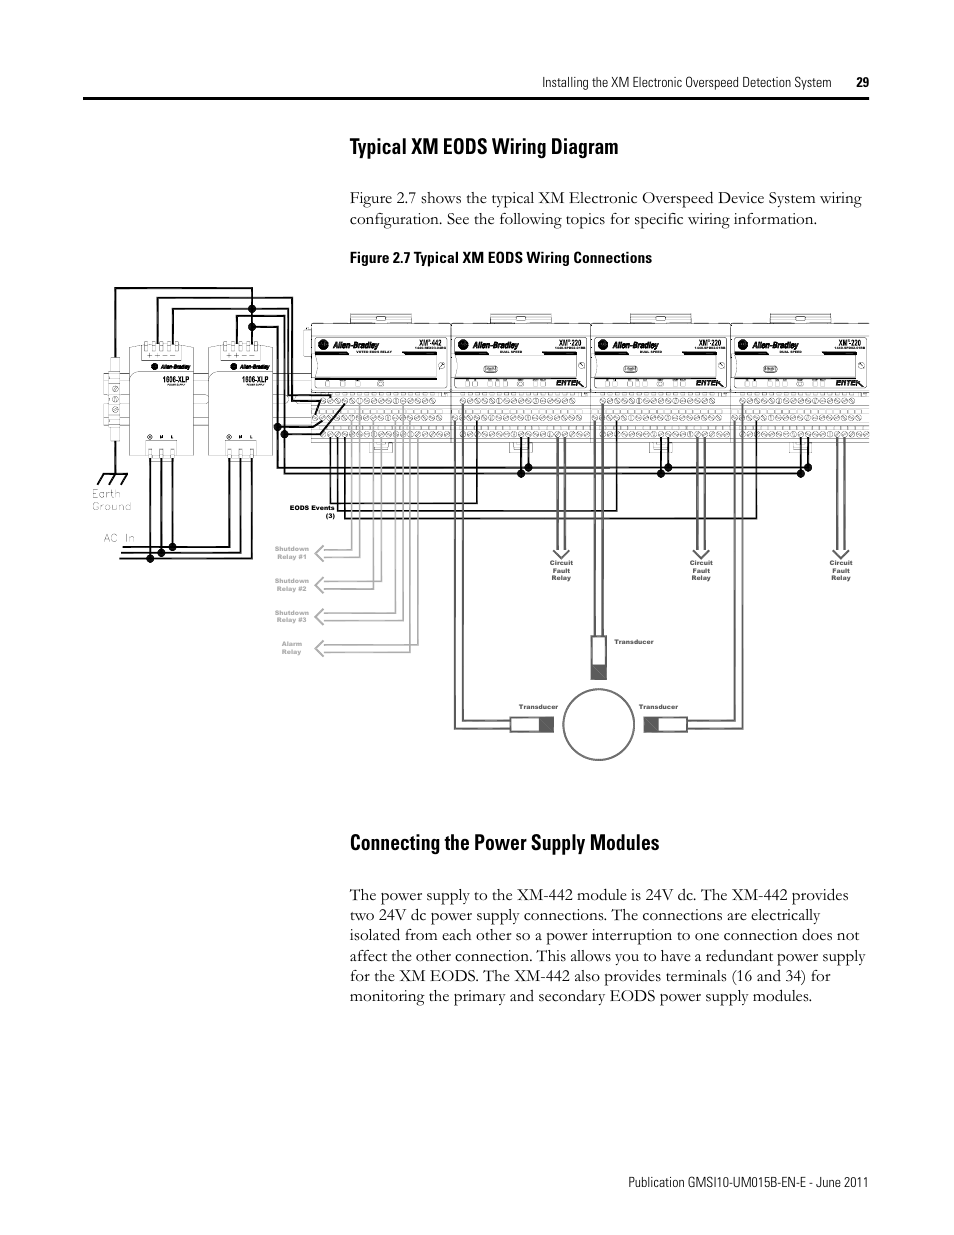 hight resolution of typical xm eods wiring diagram connecting the power supply modules figure 2 7 typical xm eods wiring connections rockwell automation 1606 xlp xm